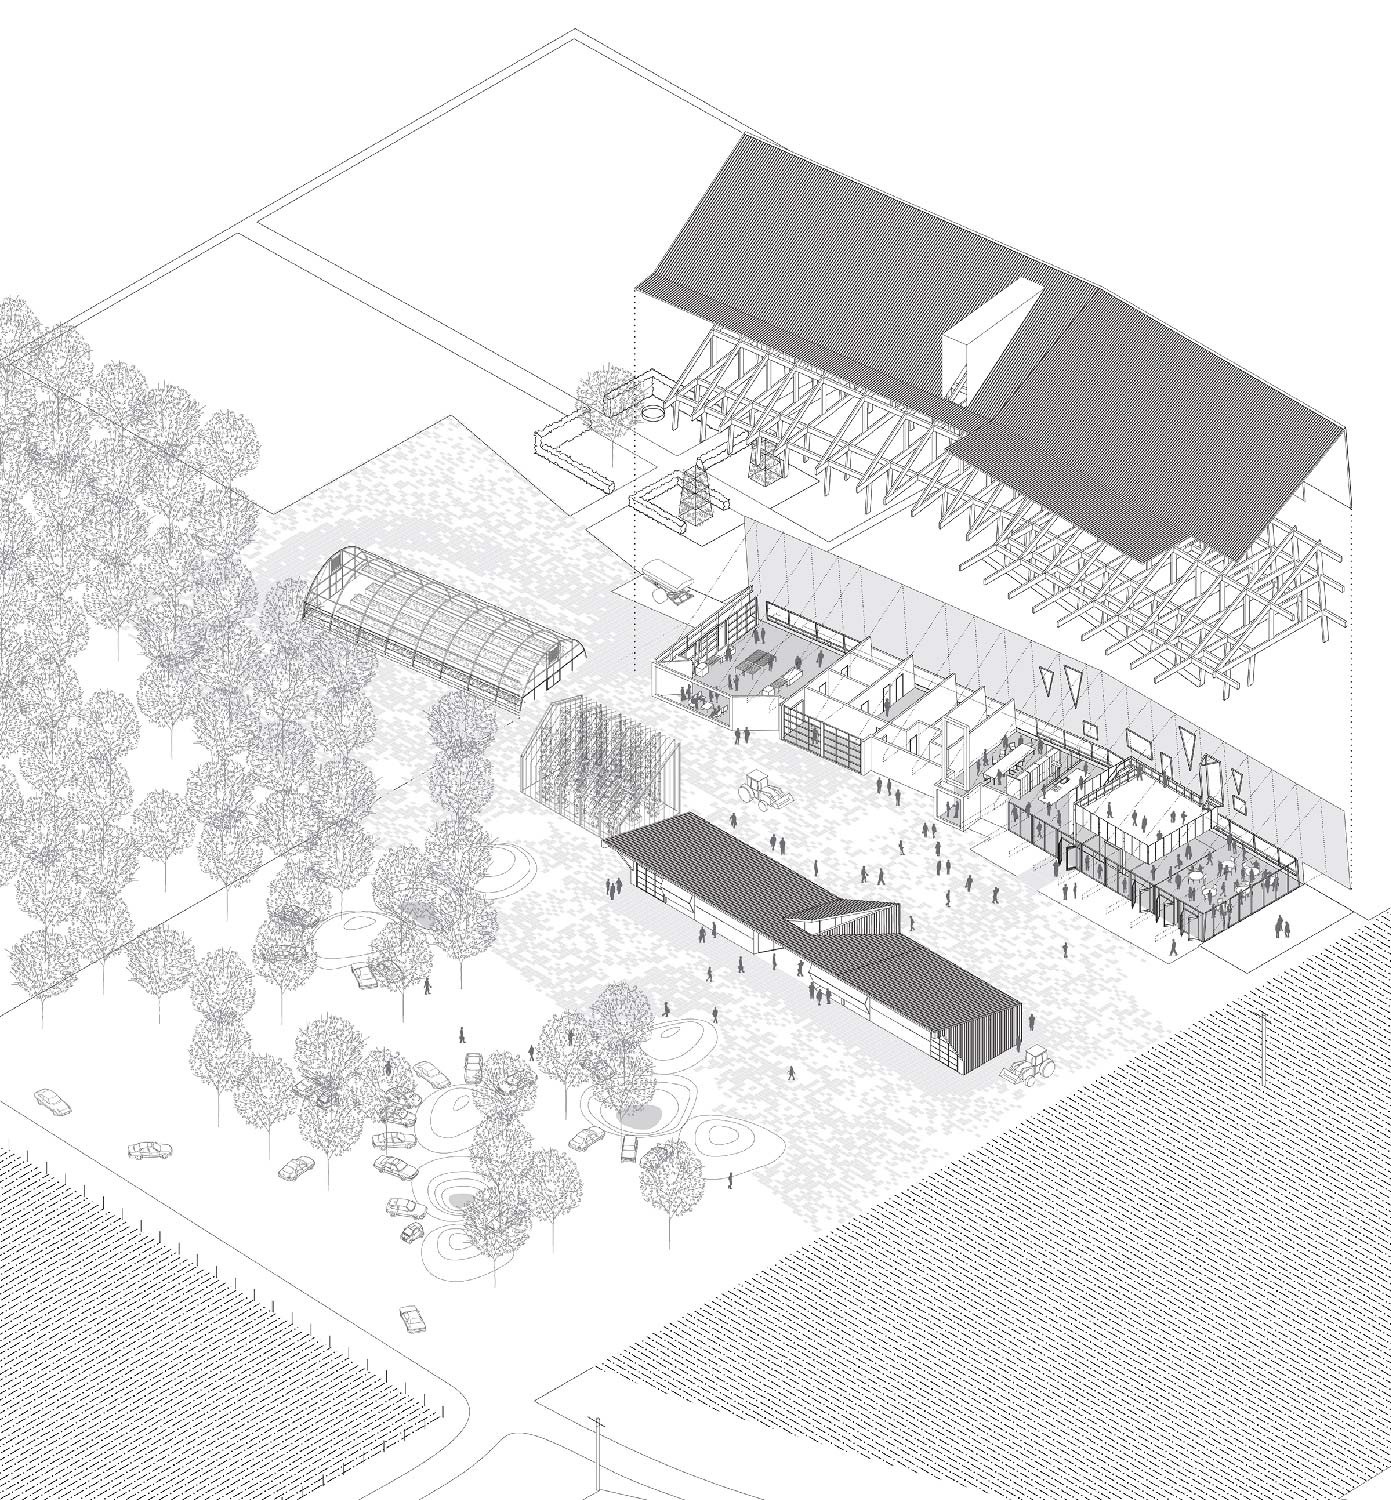 The complex arrays parking gardens in an orchard, garage/shop, greenhouses, and training loft. University of Arkansas Community Design Center}